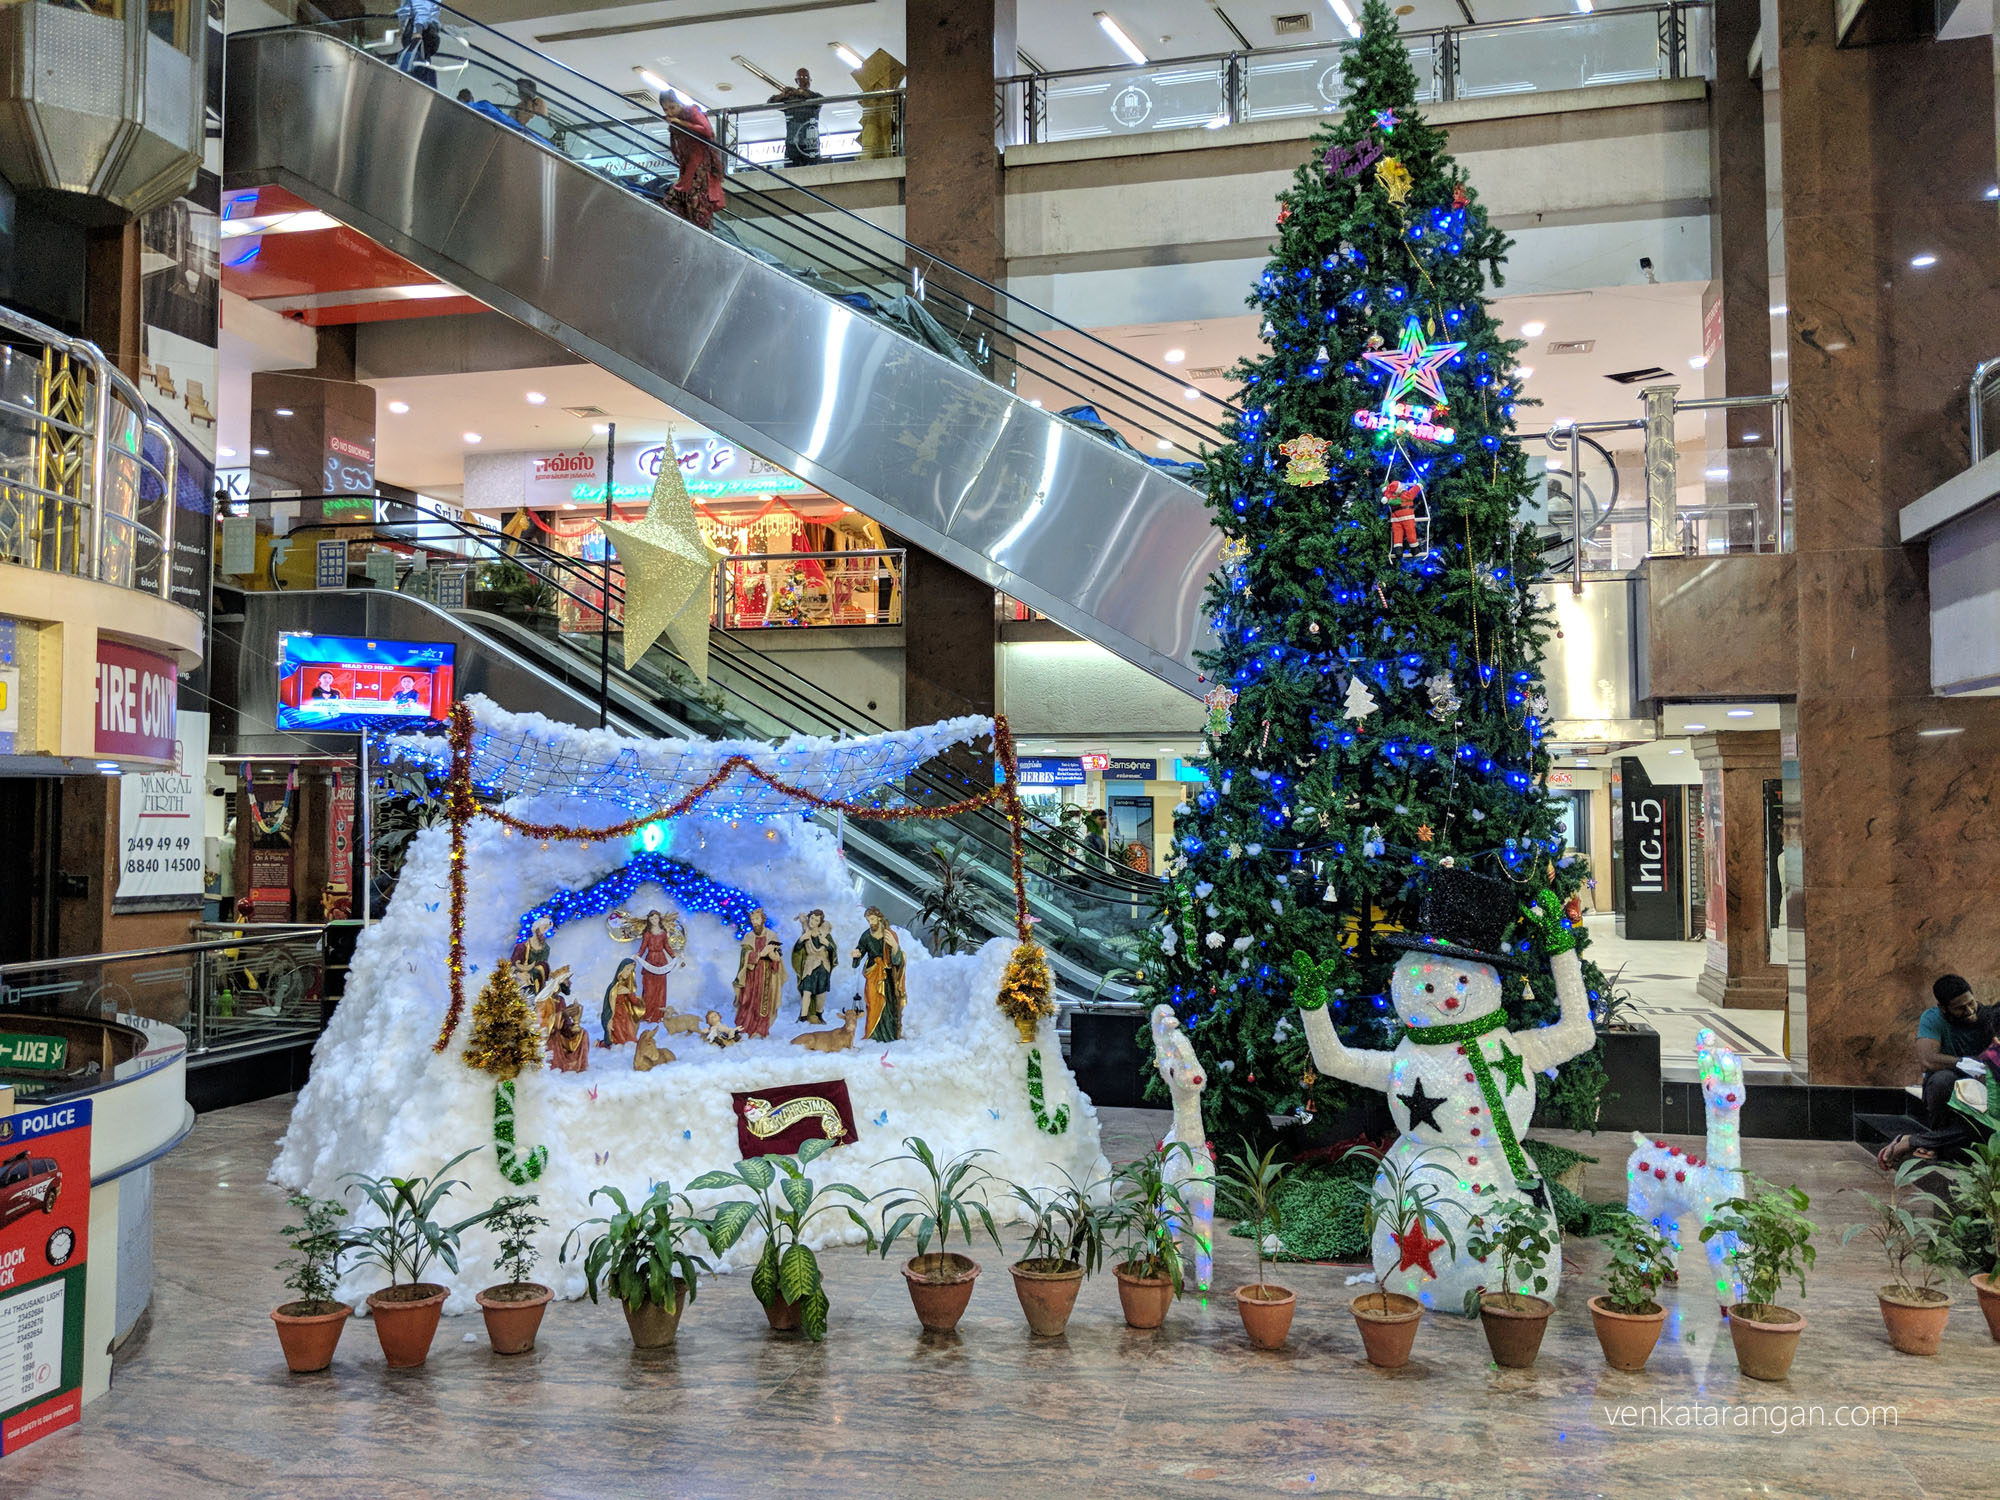 Simple Christmas decorations - Spencer Plaza